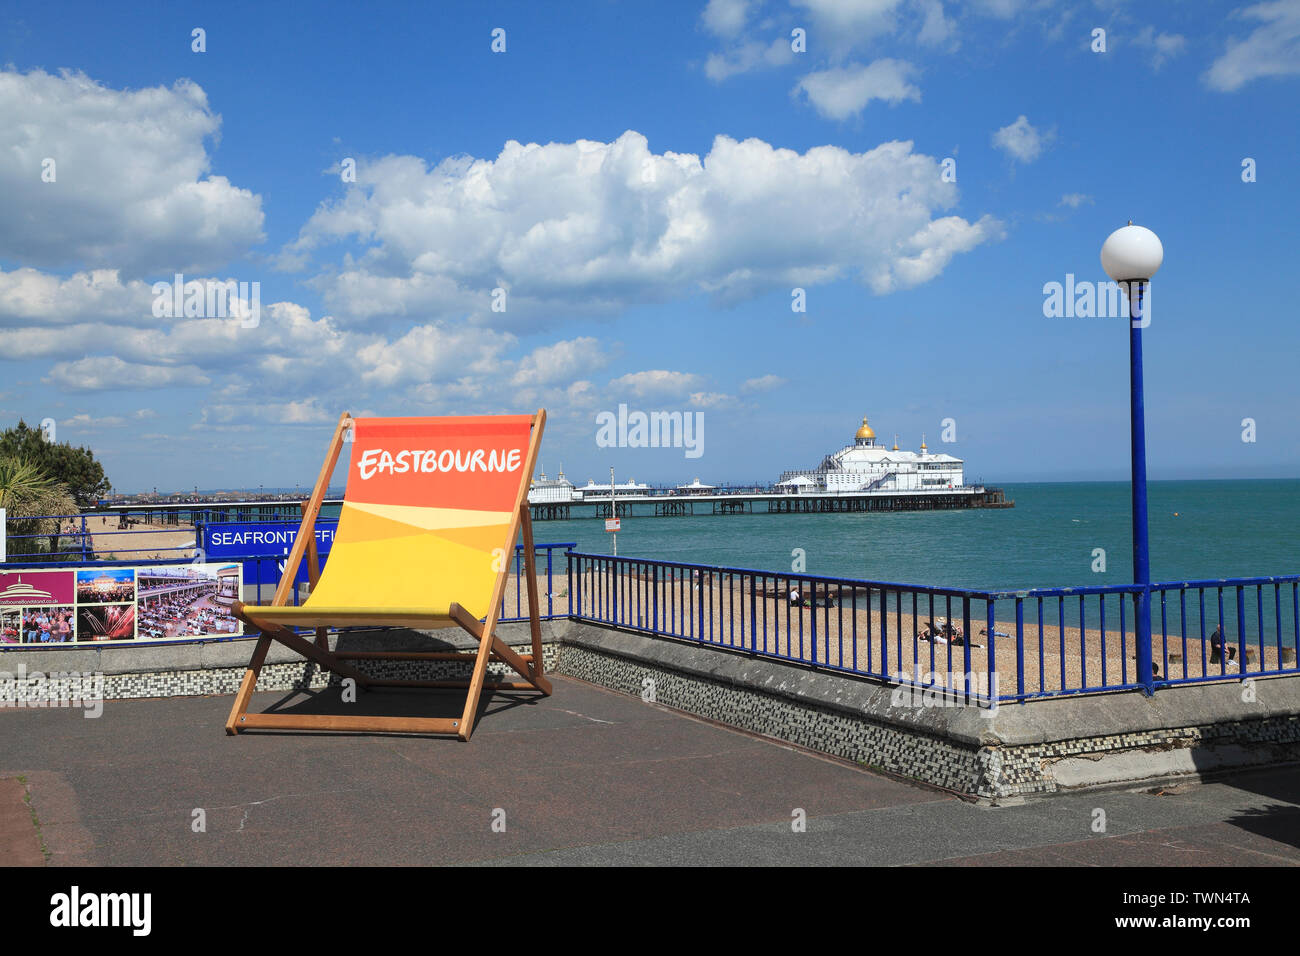 Deckchair on Eastbourne seafront promenade , East Sussex, UK - Stock Image